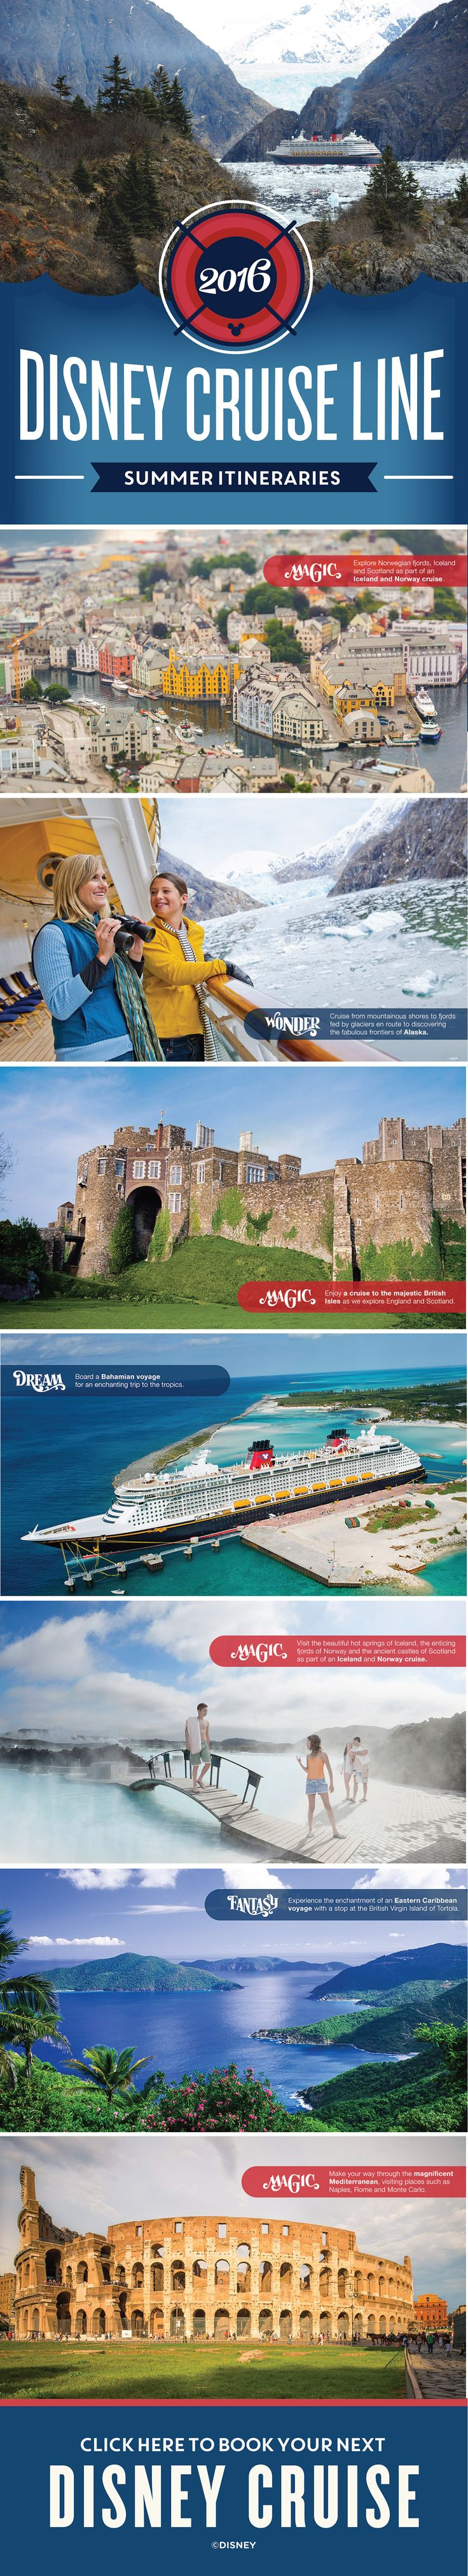 In the summer of 2016, Disney Cruise Line is setting sail to more than 15 European countries, including our first ever British Isle cruise, visiting Scotland, Ireland, England and France! Click to learn more about this exciting destinations.